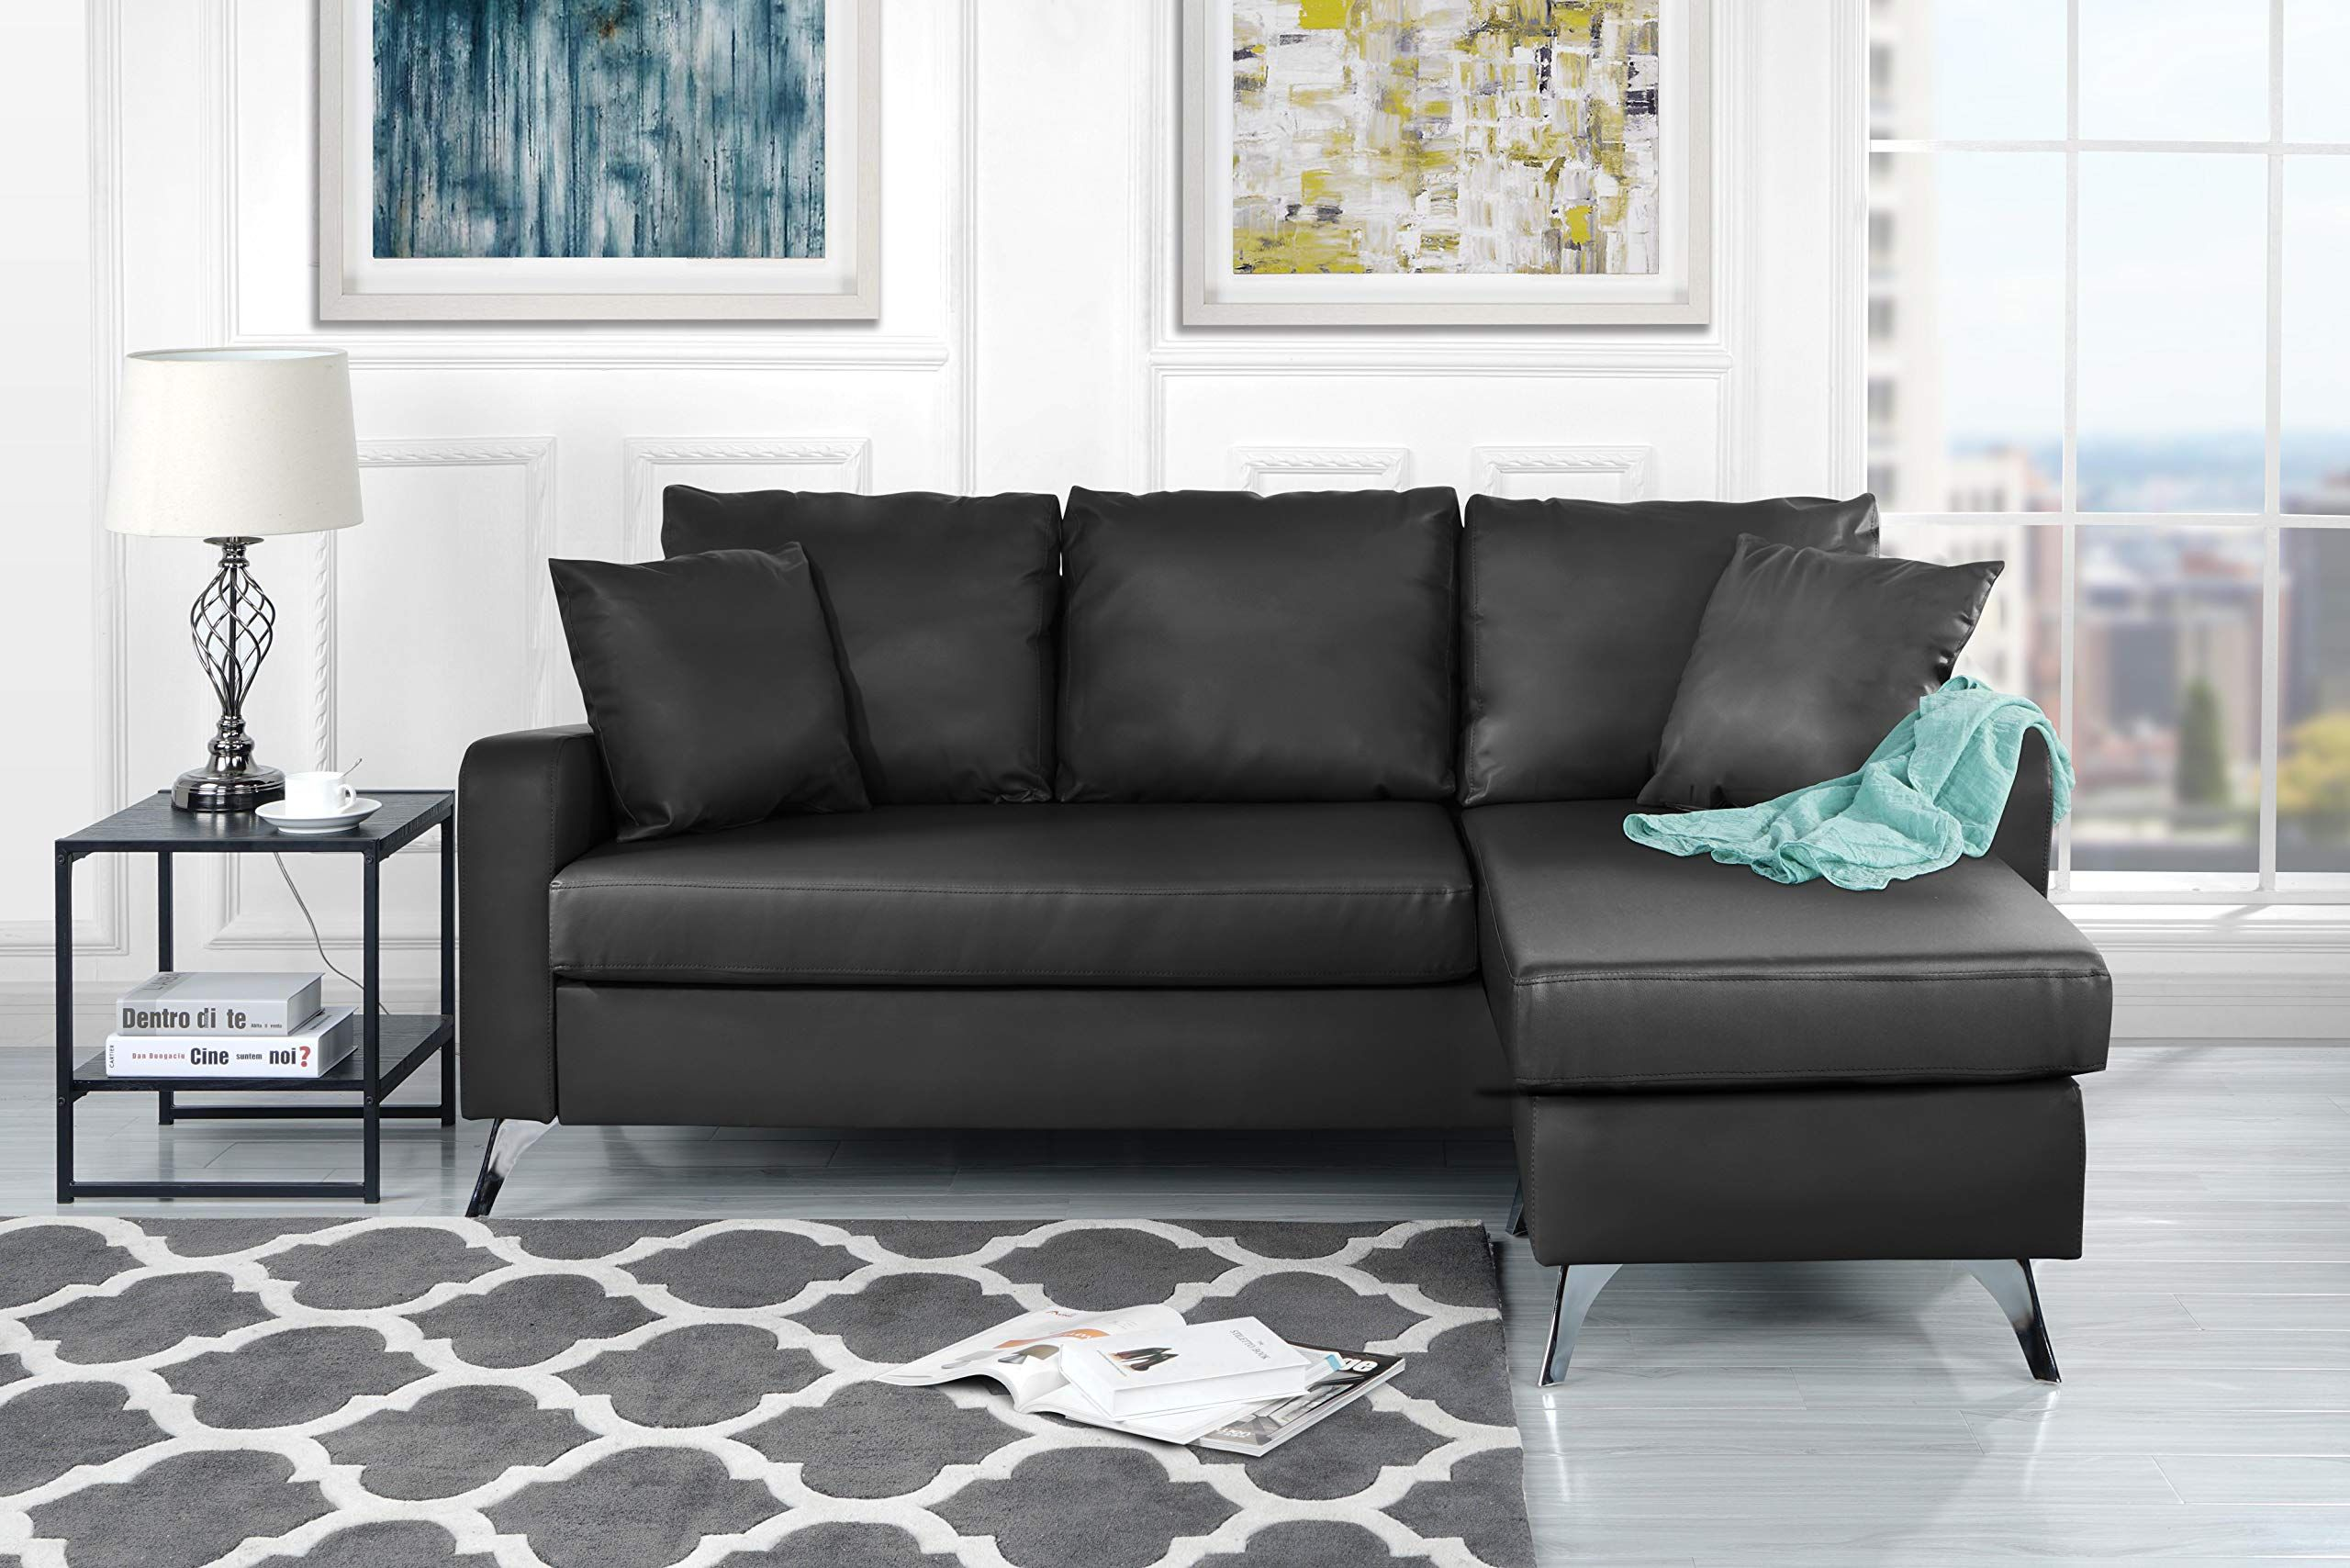 Divano Roma Furniture Bonded Leather Sectional Sofa Small E Configurable Couch Dark Grey